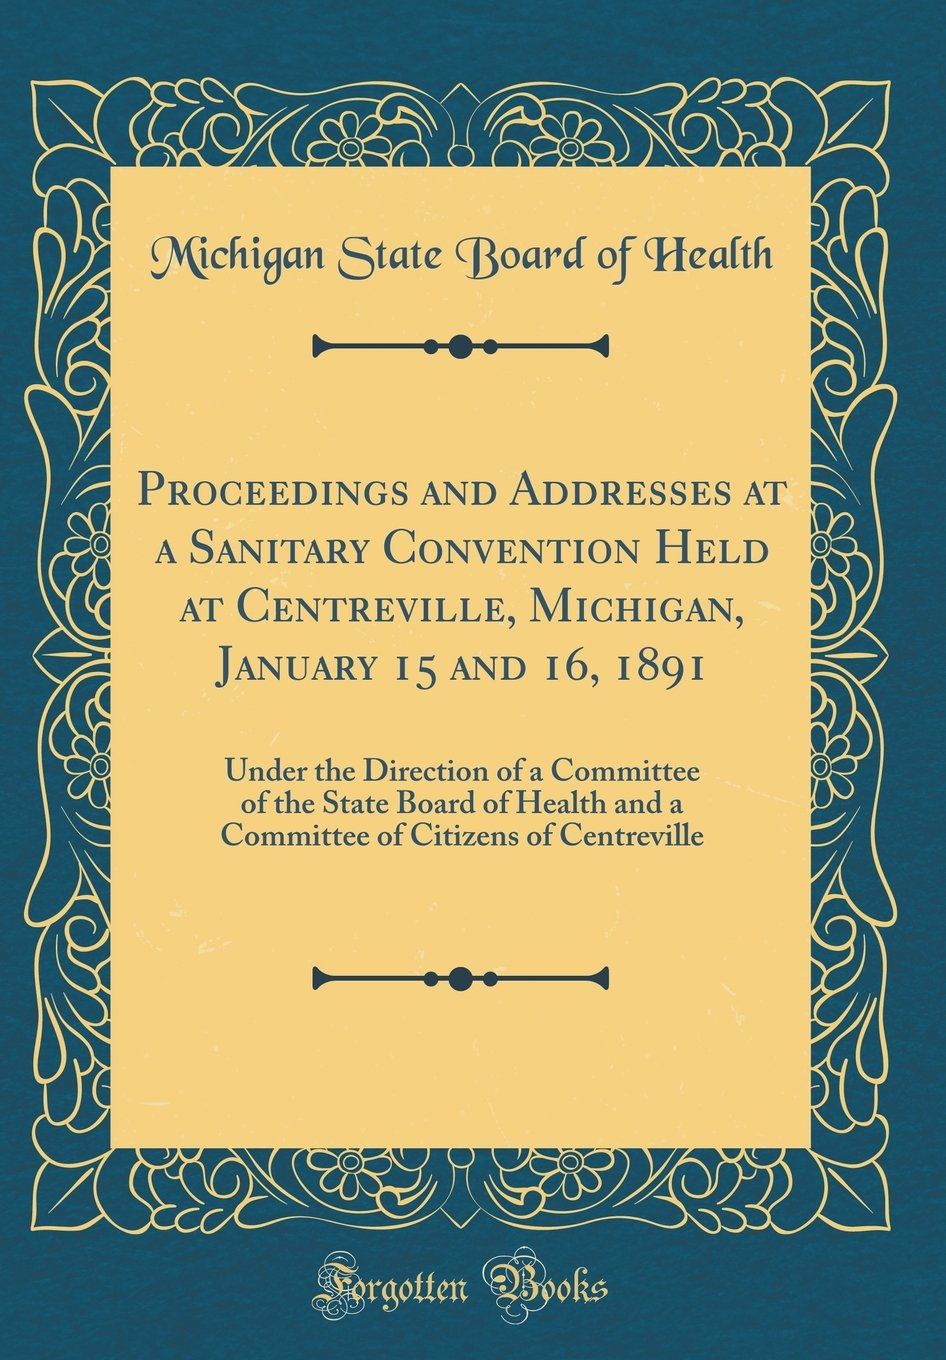 Download Proceedings and Addresses at a Sanitary Convention Held at Centreville, Michigan, January 15 and 16, 1891: Under the Direction of a Committee of the ... of Citizens of Centreville (Classic Reprint) pdf